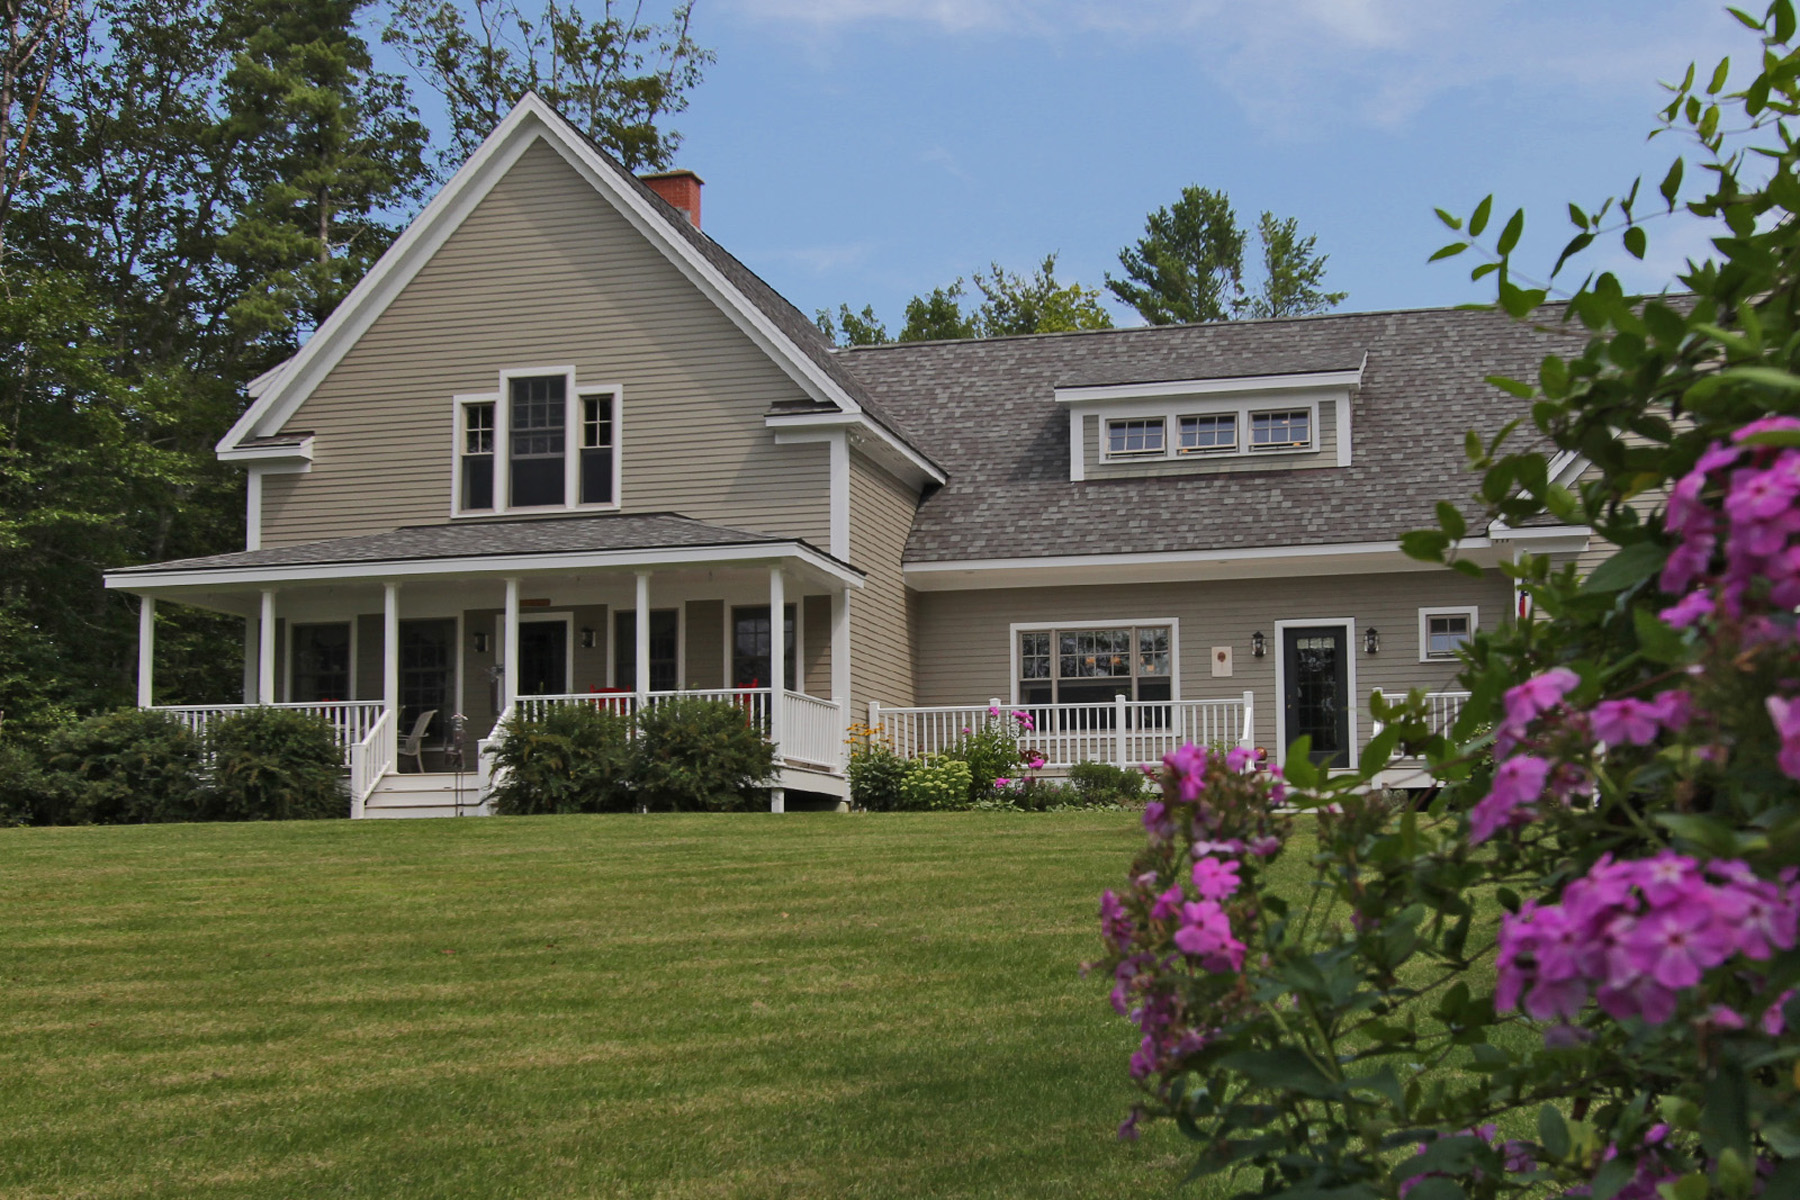 Single Family Home for Sale at 79 Fort Road Edgecomb, Maine 04556 United States